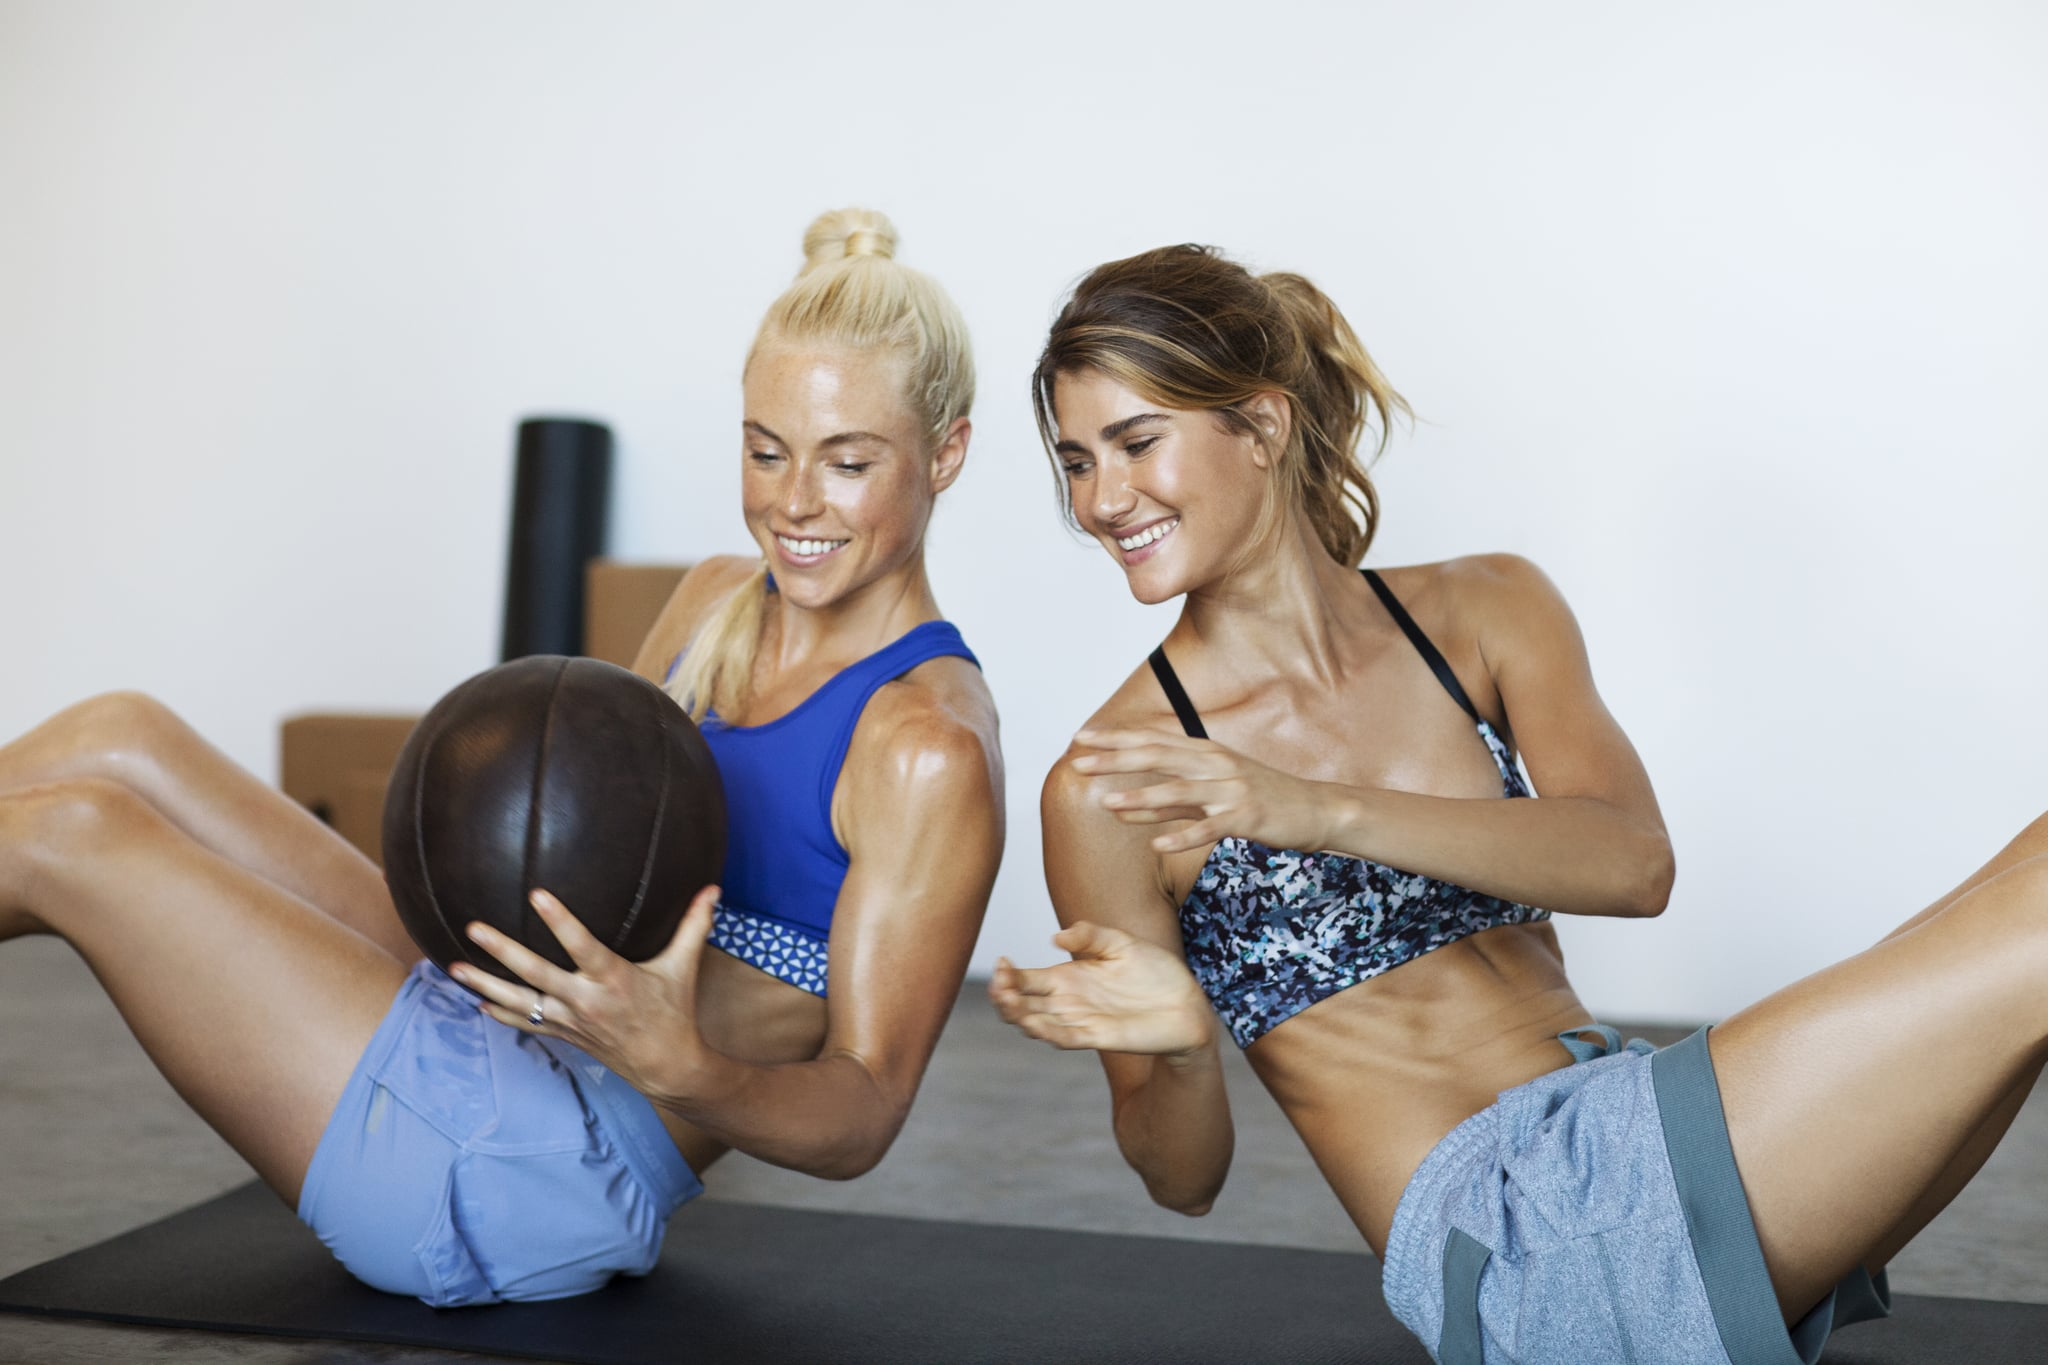 5 Trainer-Recommended Tips Every Gym Beginner Needs to Know